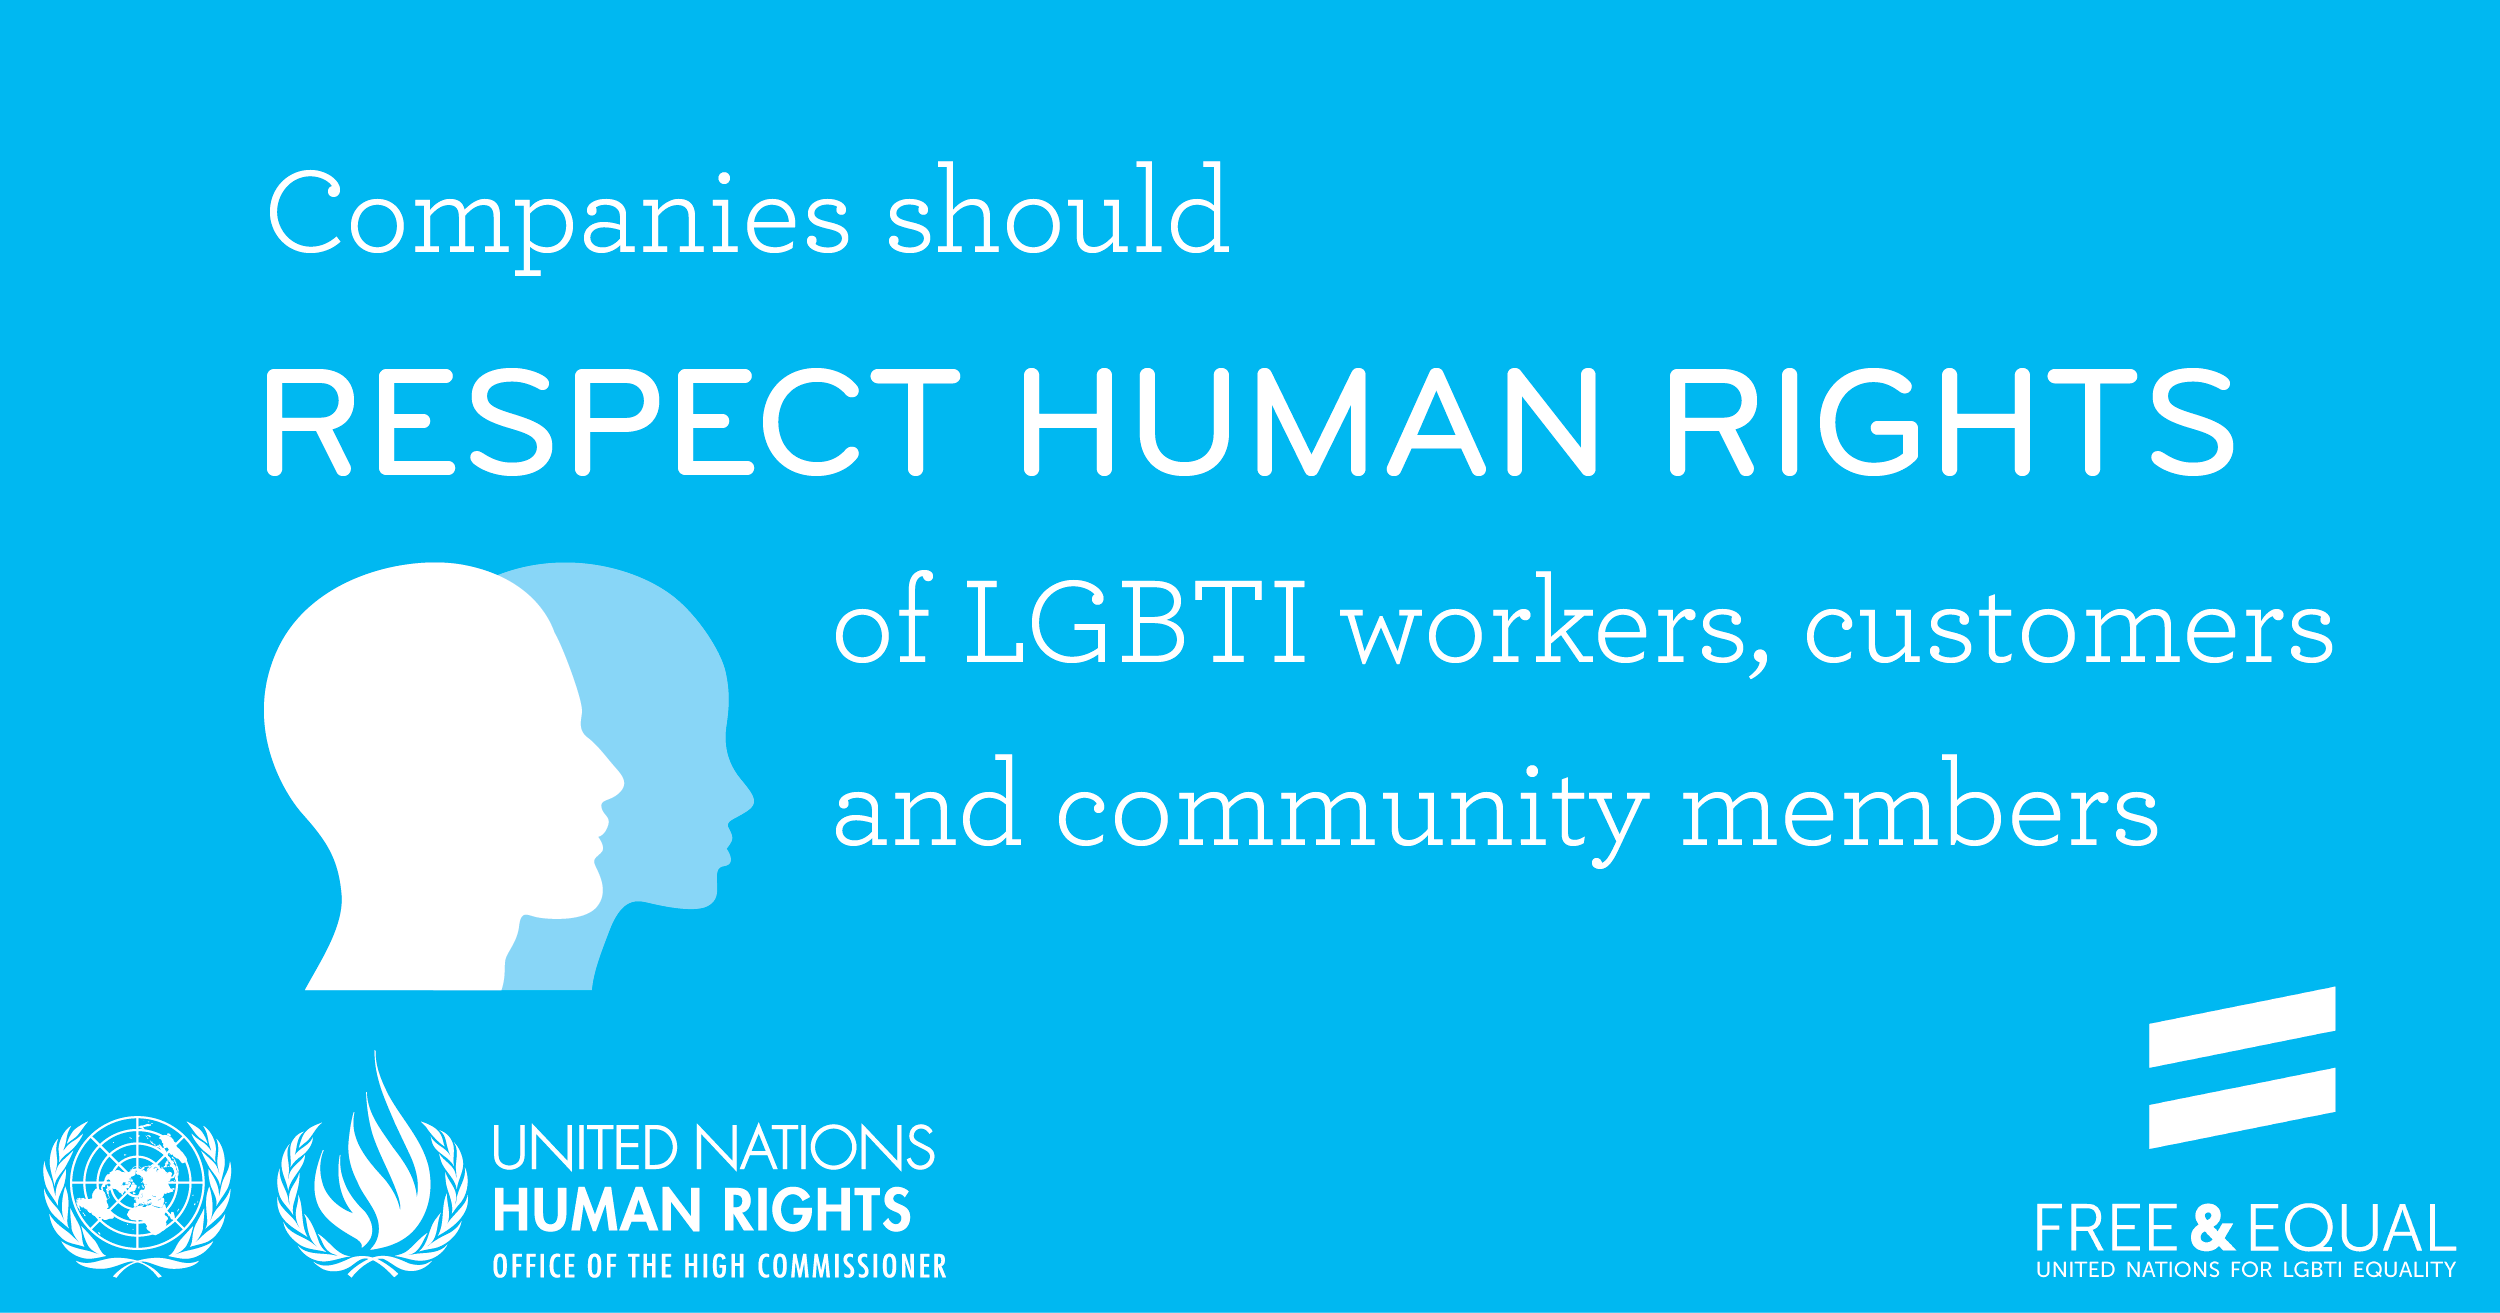 Companies should respect the human rights of their LGBTI workers, customers and community members.